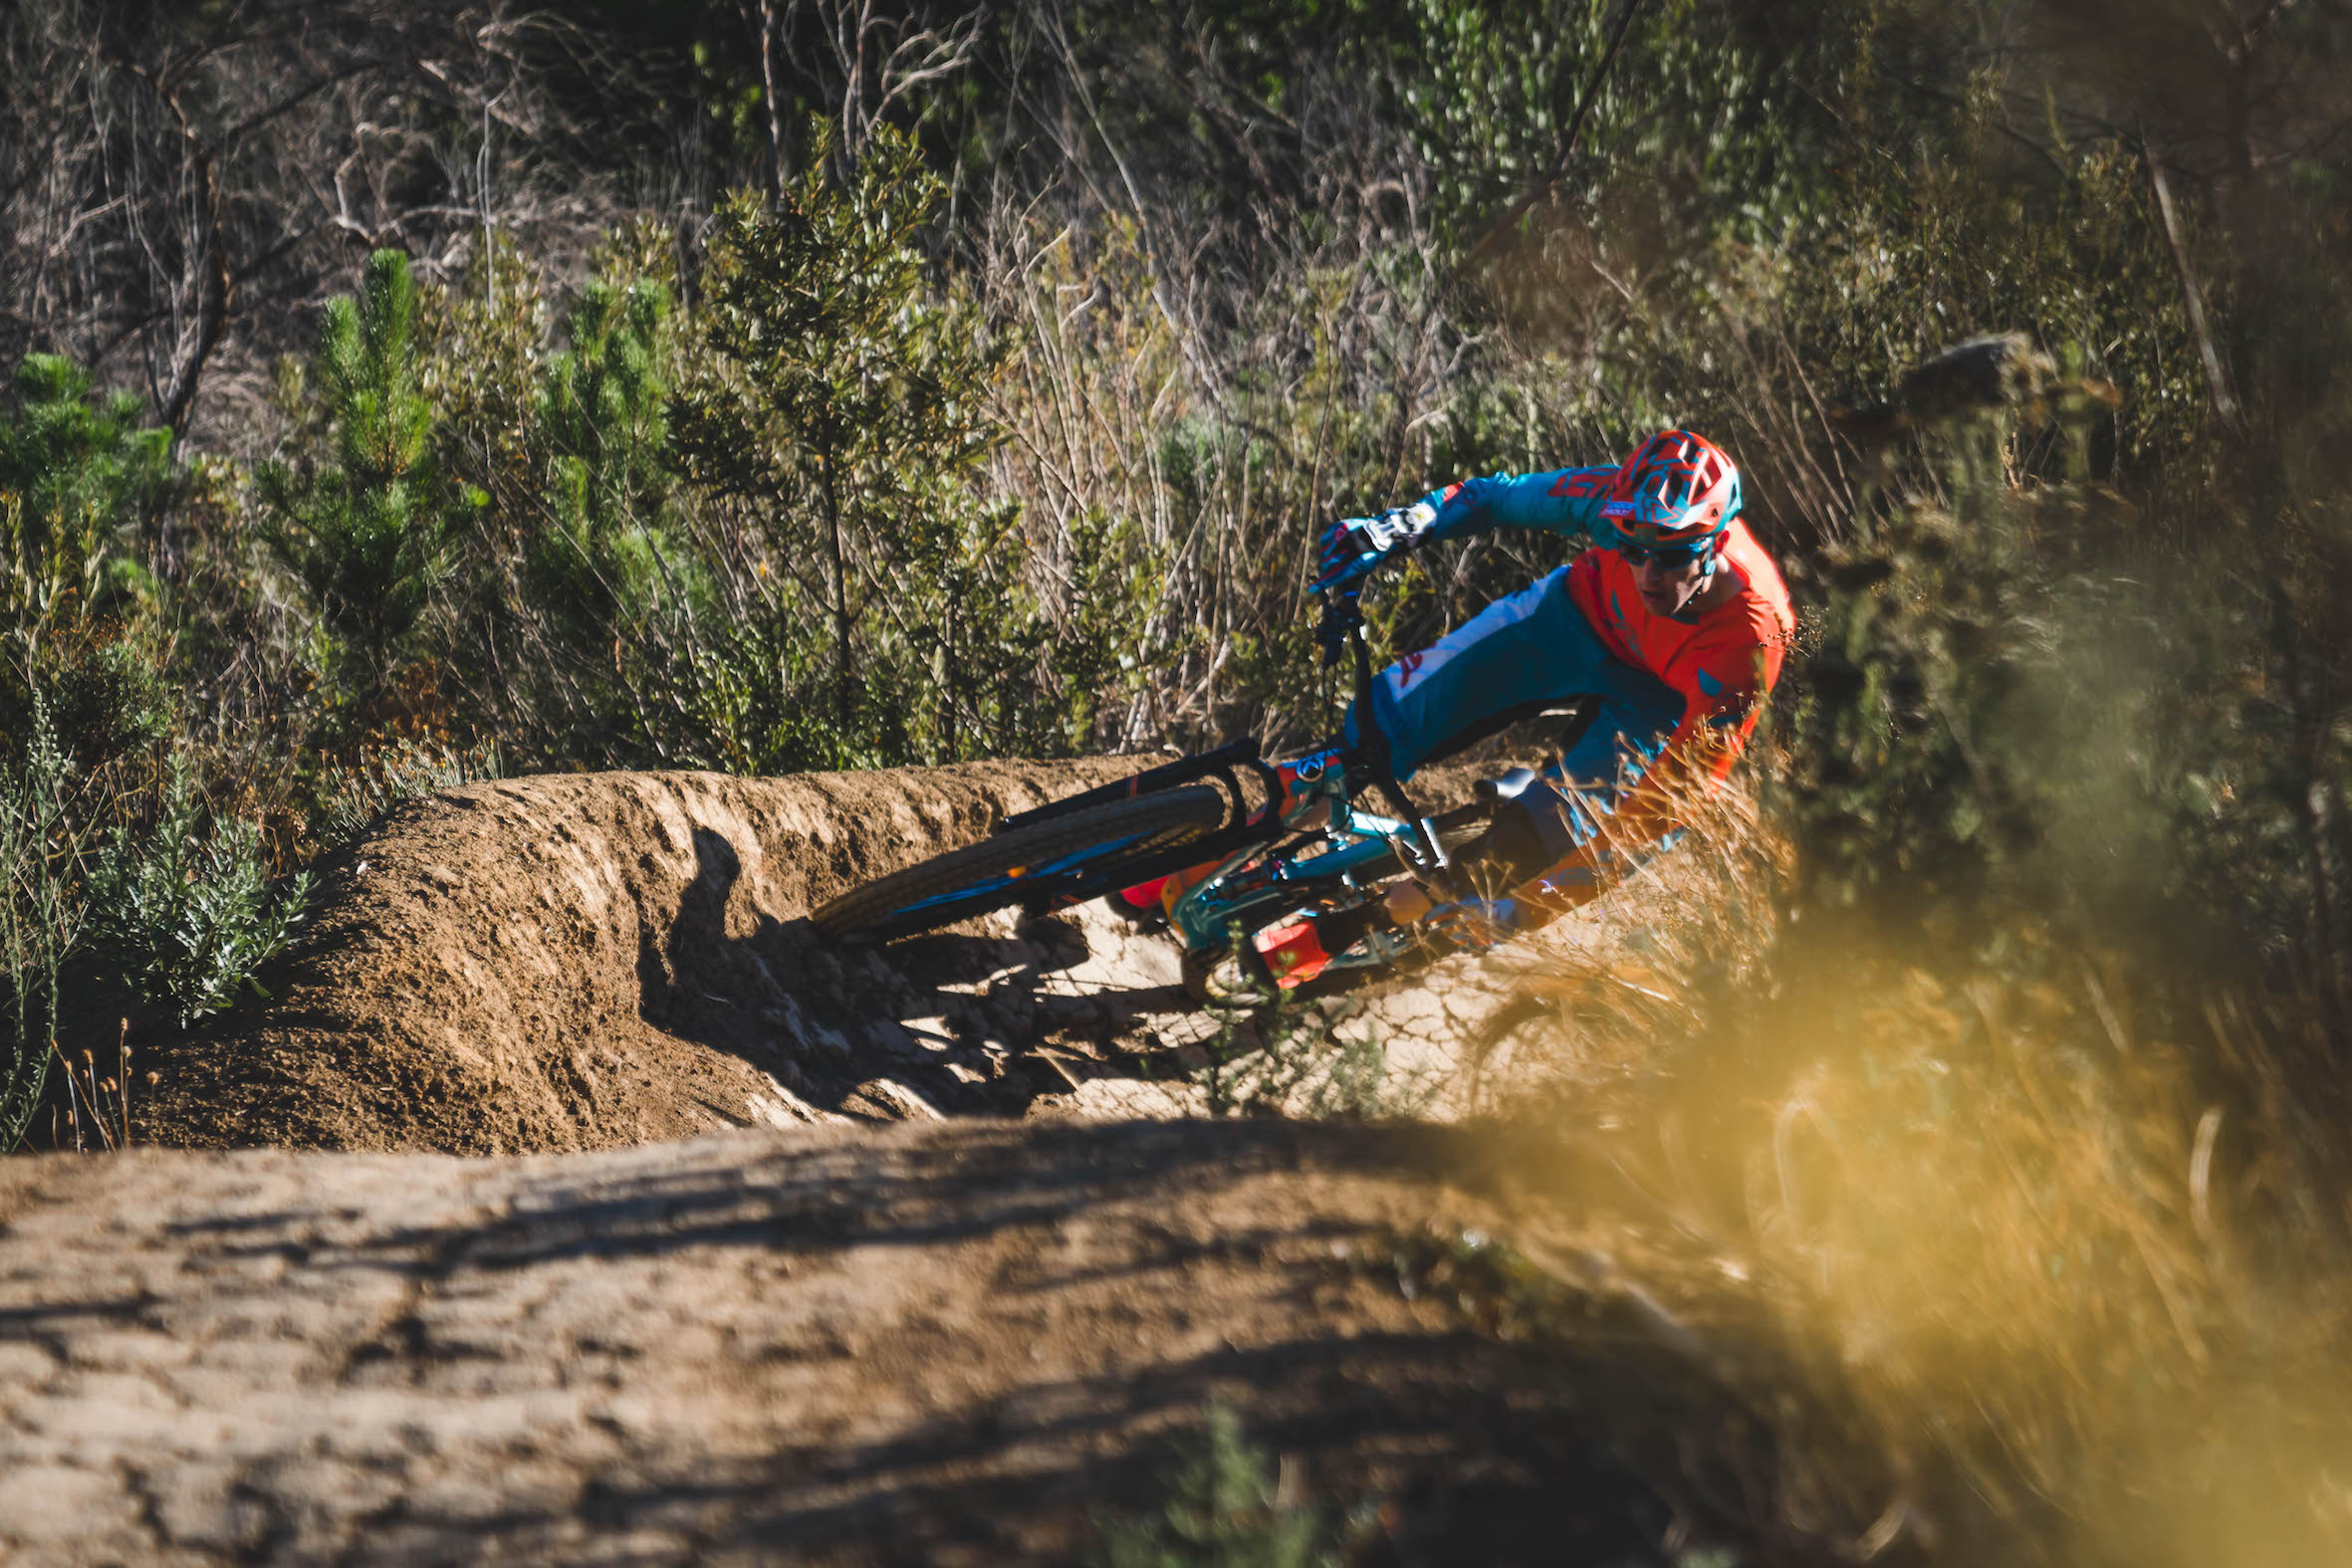 Interview with Enduro Mountain Bike rider Martin Zietsman about his new Knolly Fugitive